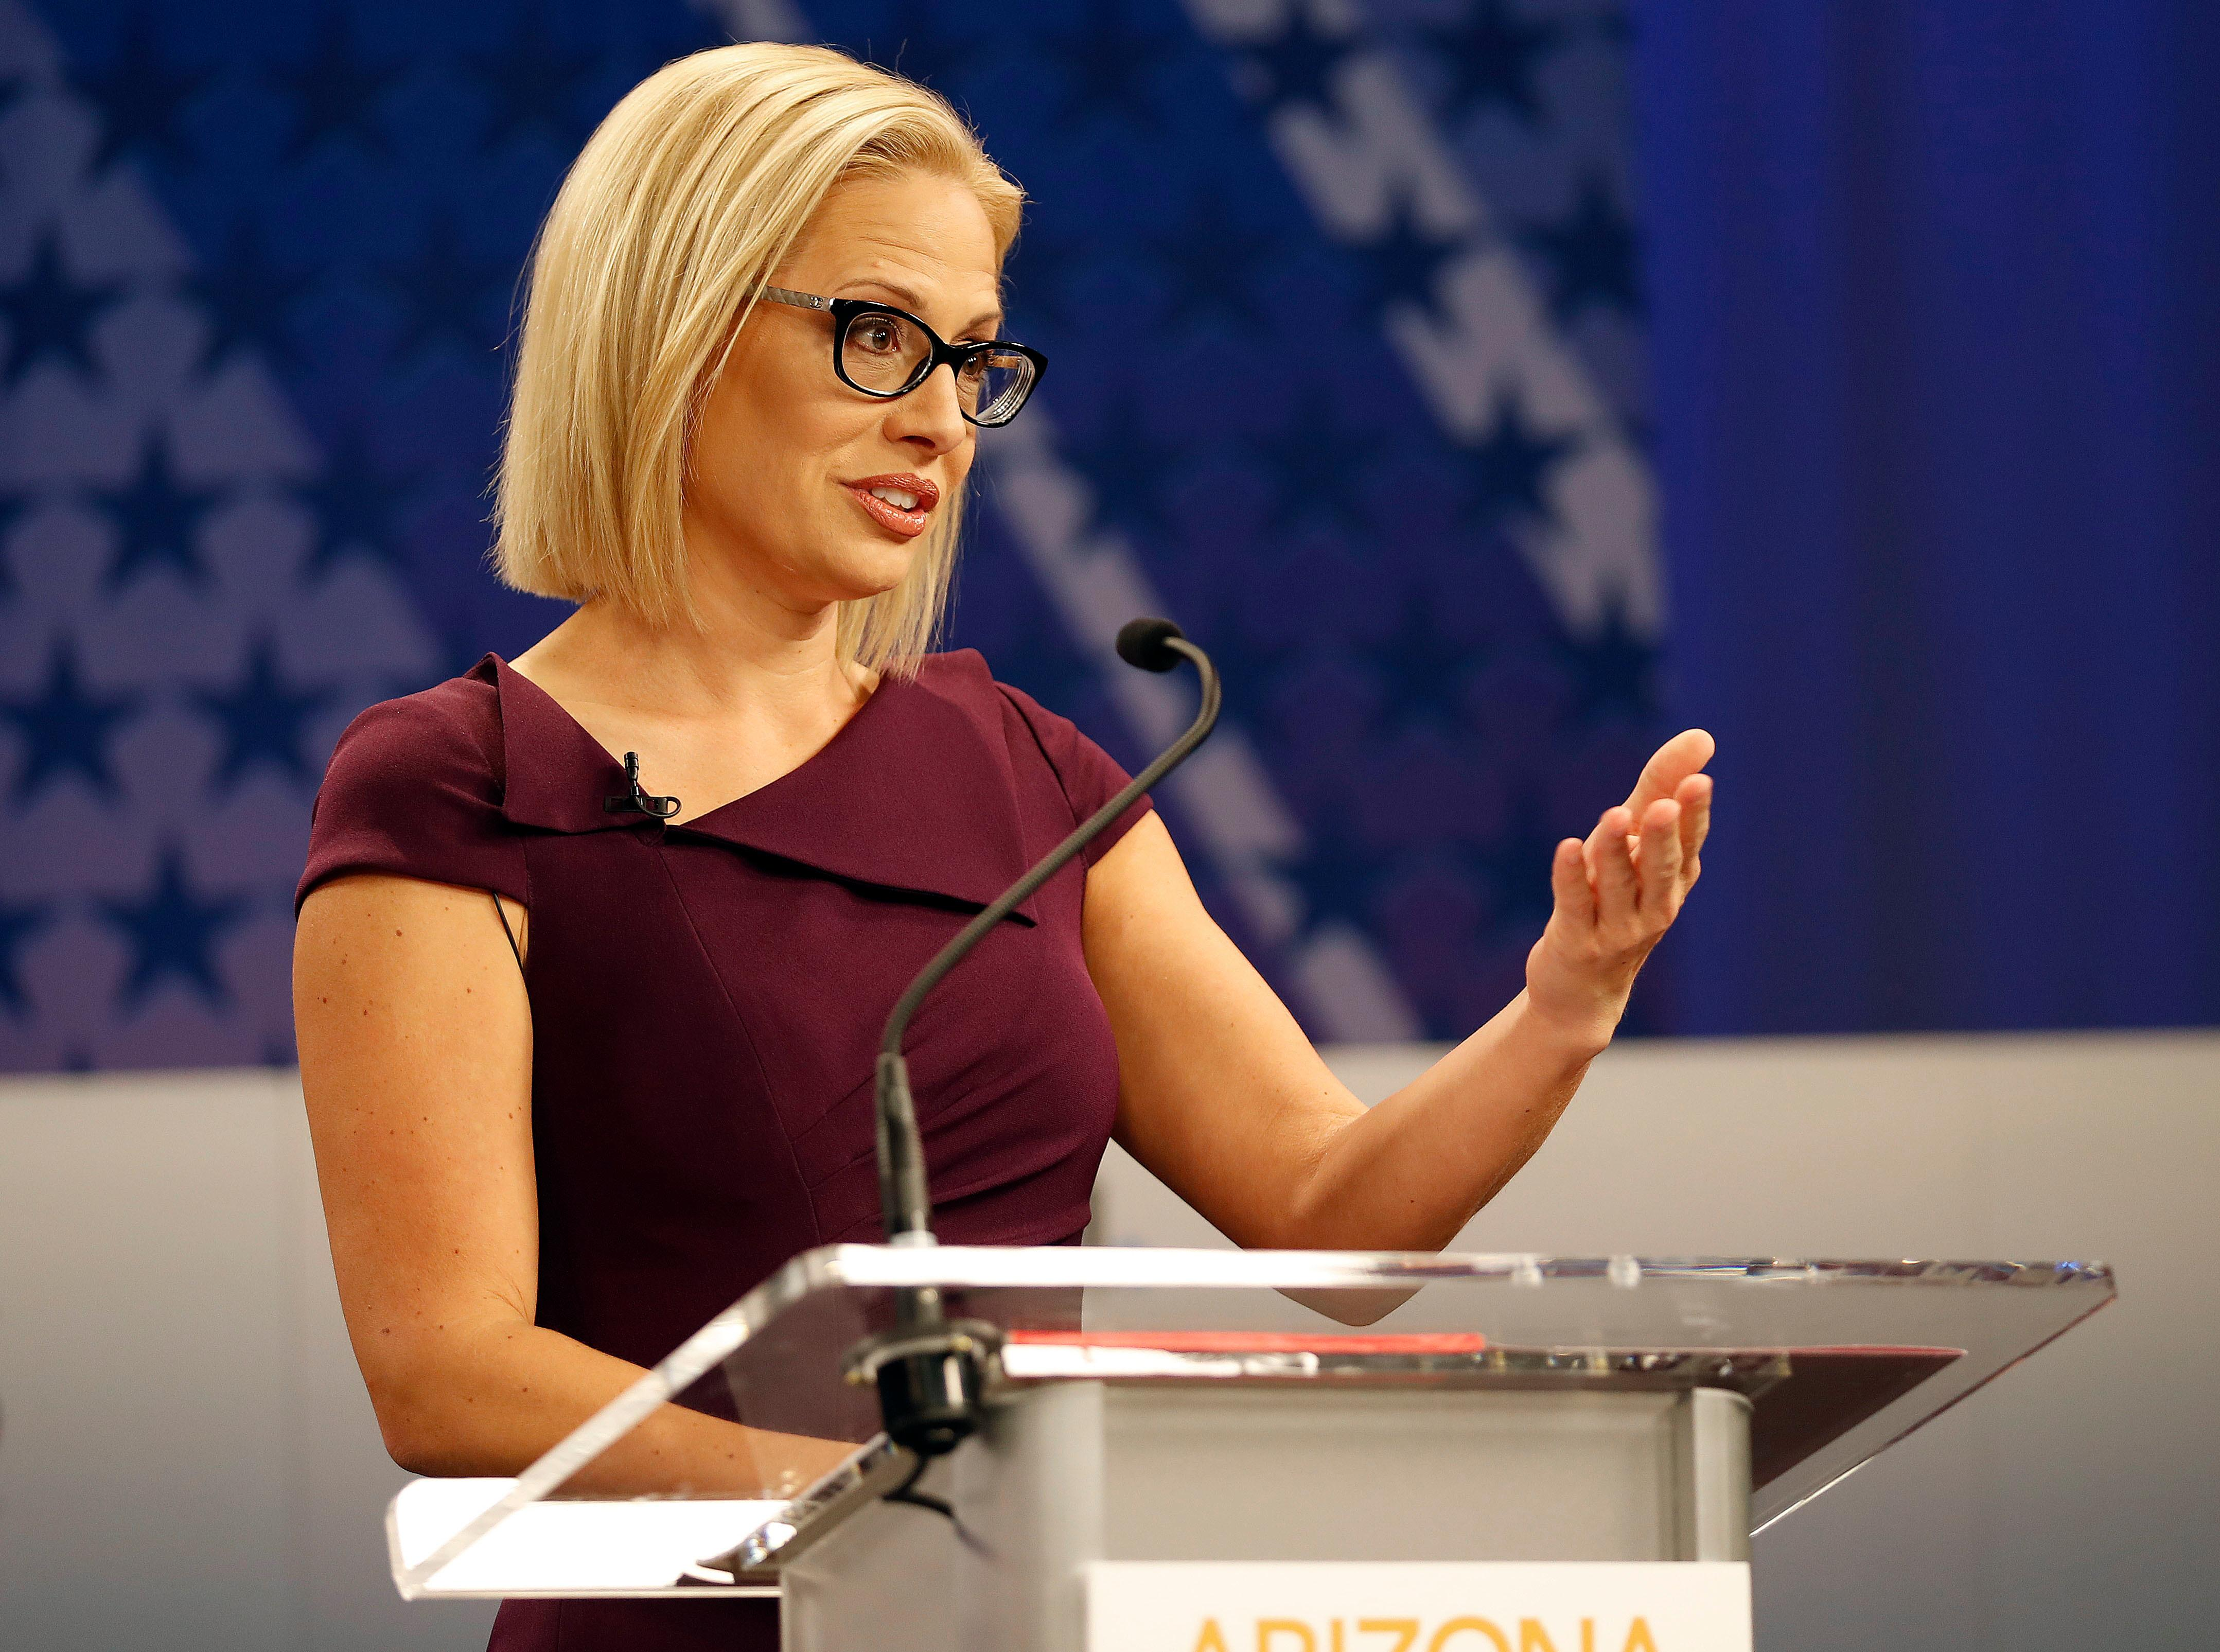 U.S. Rep. Kyrsten Sinema, D-Ariz., goes over the rules in a television studio prior to a televised debate with U.S. Rep. Martha McSally, R-Ariz., Monday, Oct. 15, 2018, in Phoenix. Both ladies are seeking to fill the seat of U.S. Sen. Jake Flake, R-Ariz., who is retiring. The Arizona Senate contest is one of the most closely-watched in the nation. (AP Photo/Matt York)